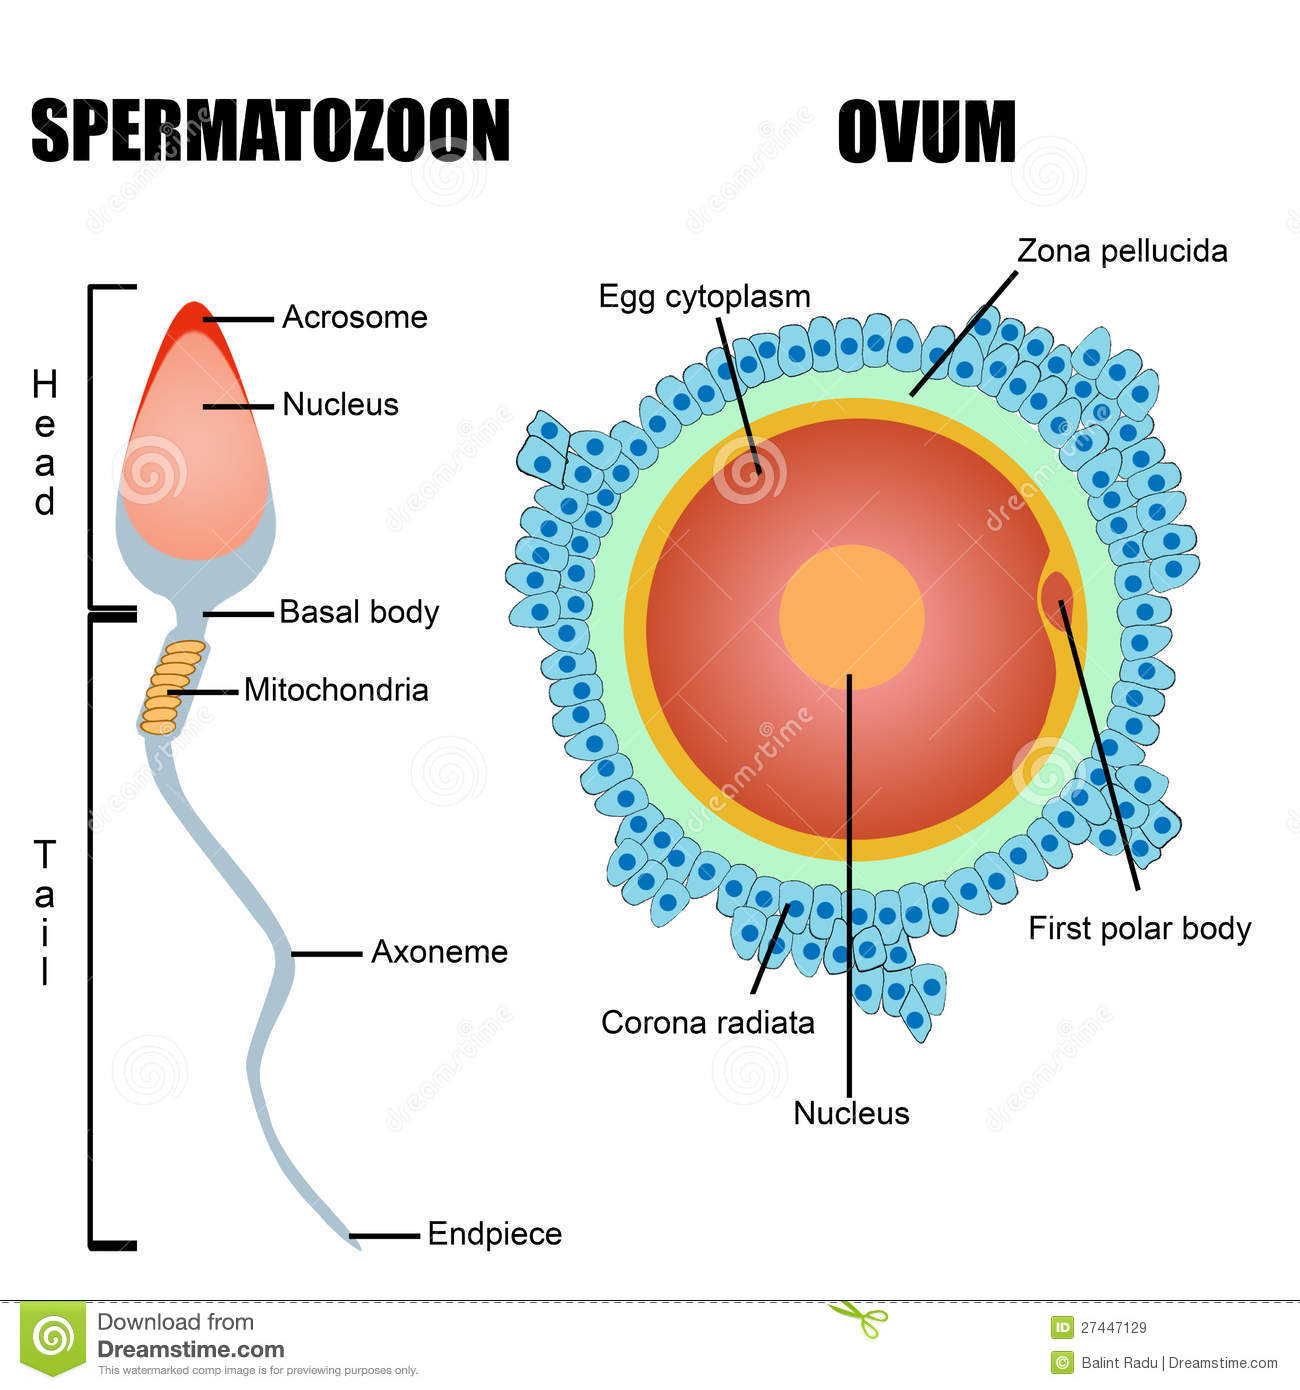 hight resolution of structure of human gametes egg and sperm stock illustration egg structure diagram human egg cell diagram